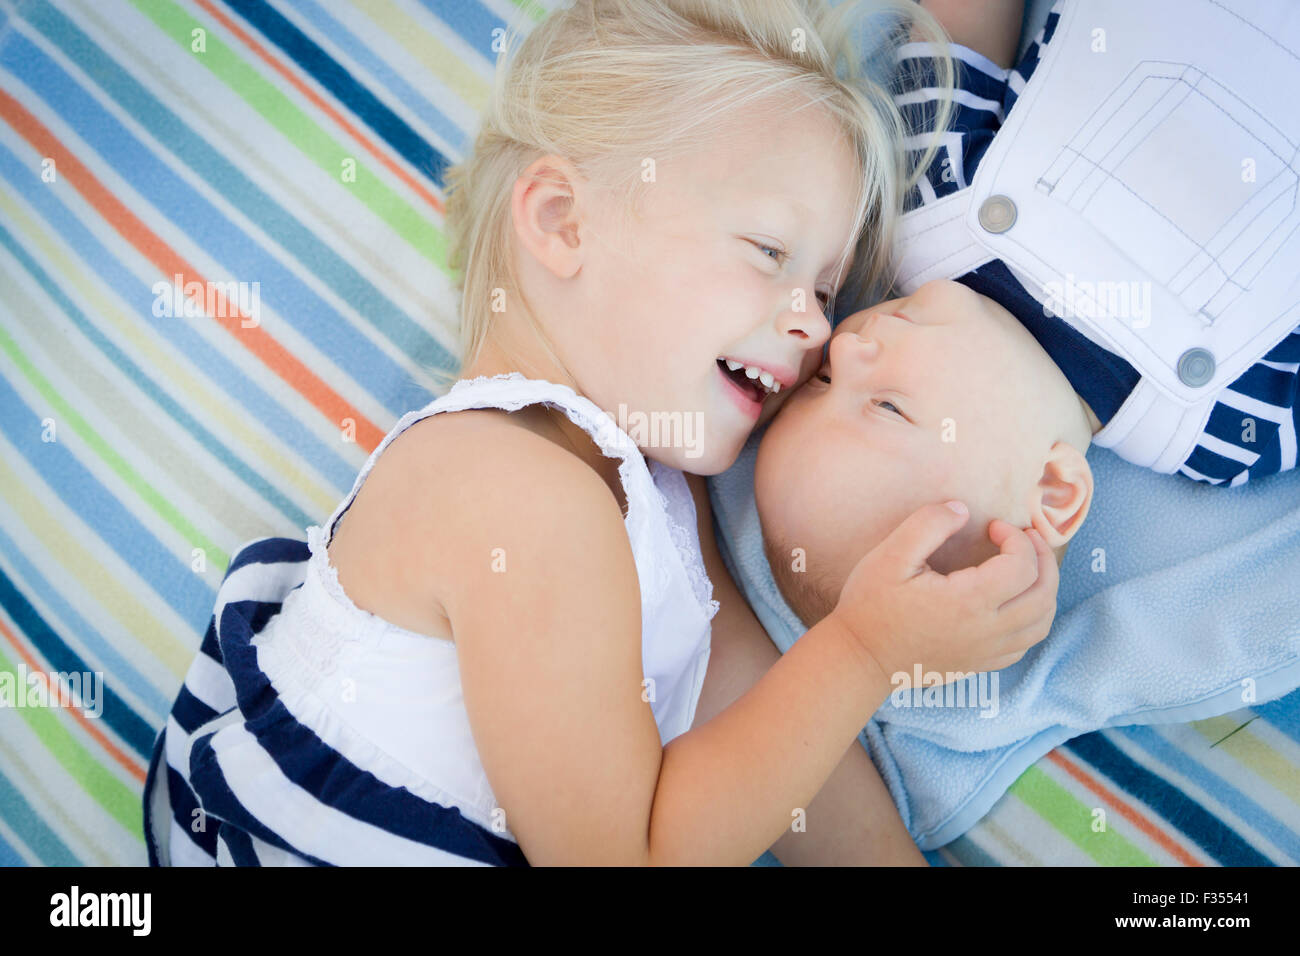 Cute Little Sister Laying Next to Her Baby Brother on Blanket. - Stock Image